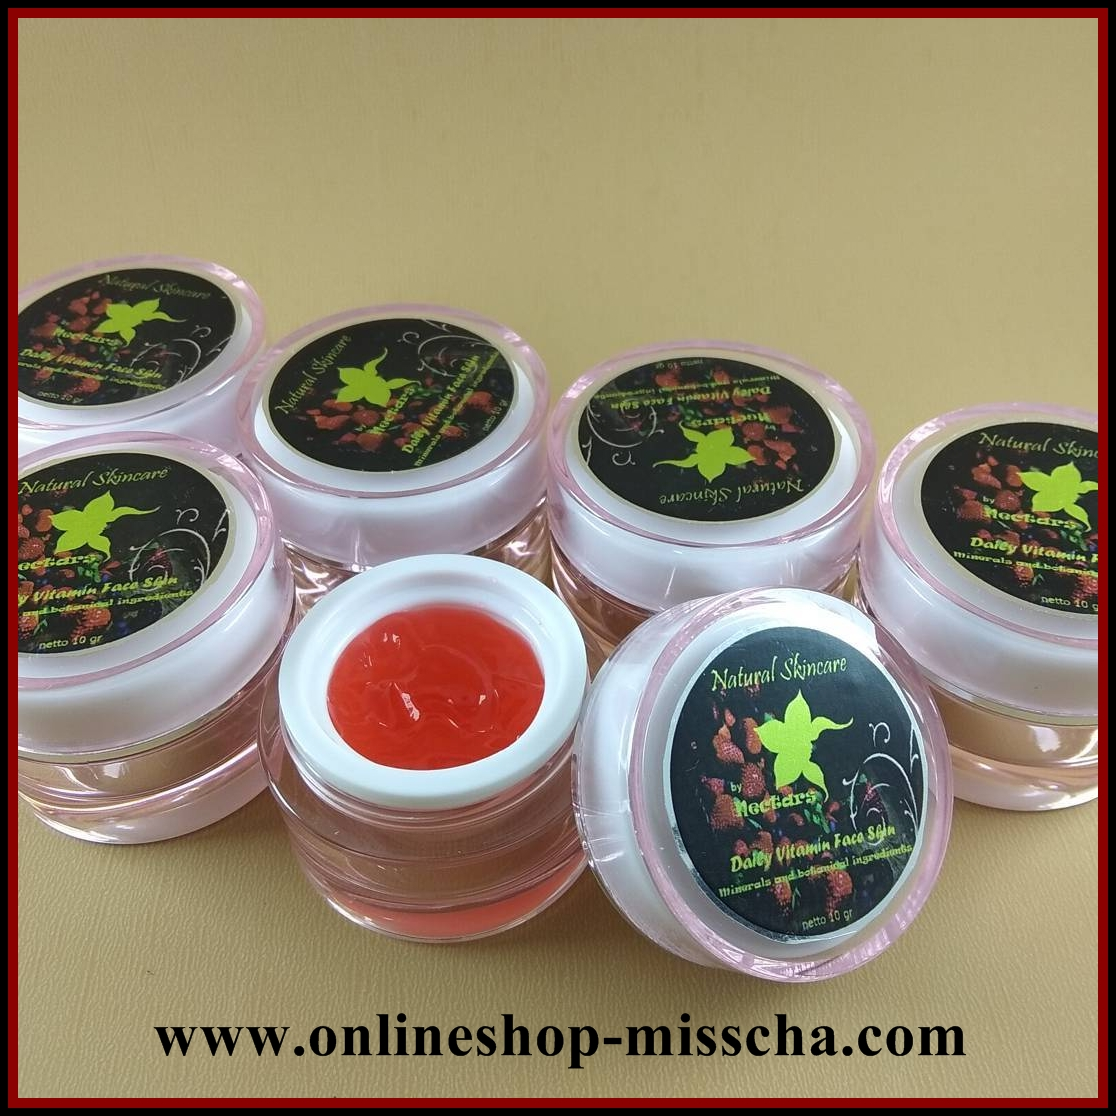 Glowing Gel Redberry Extract Online Shop Miss Cha Kemplang Stik Udang